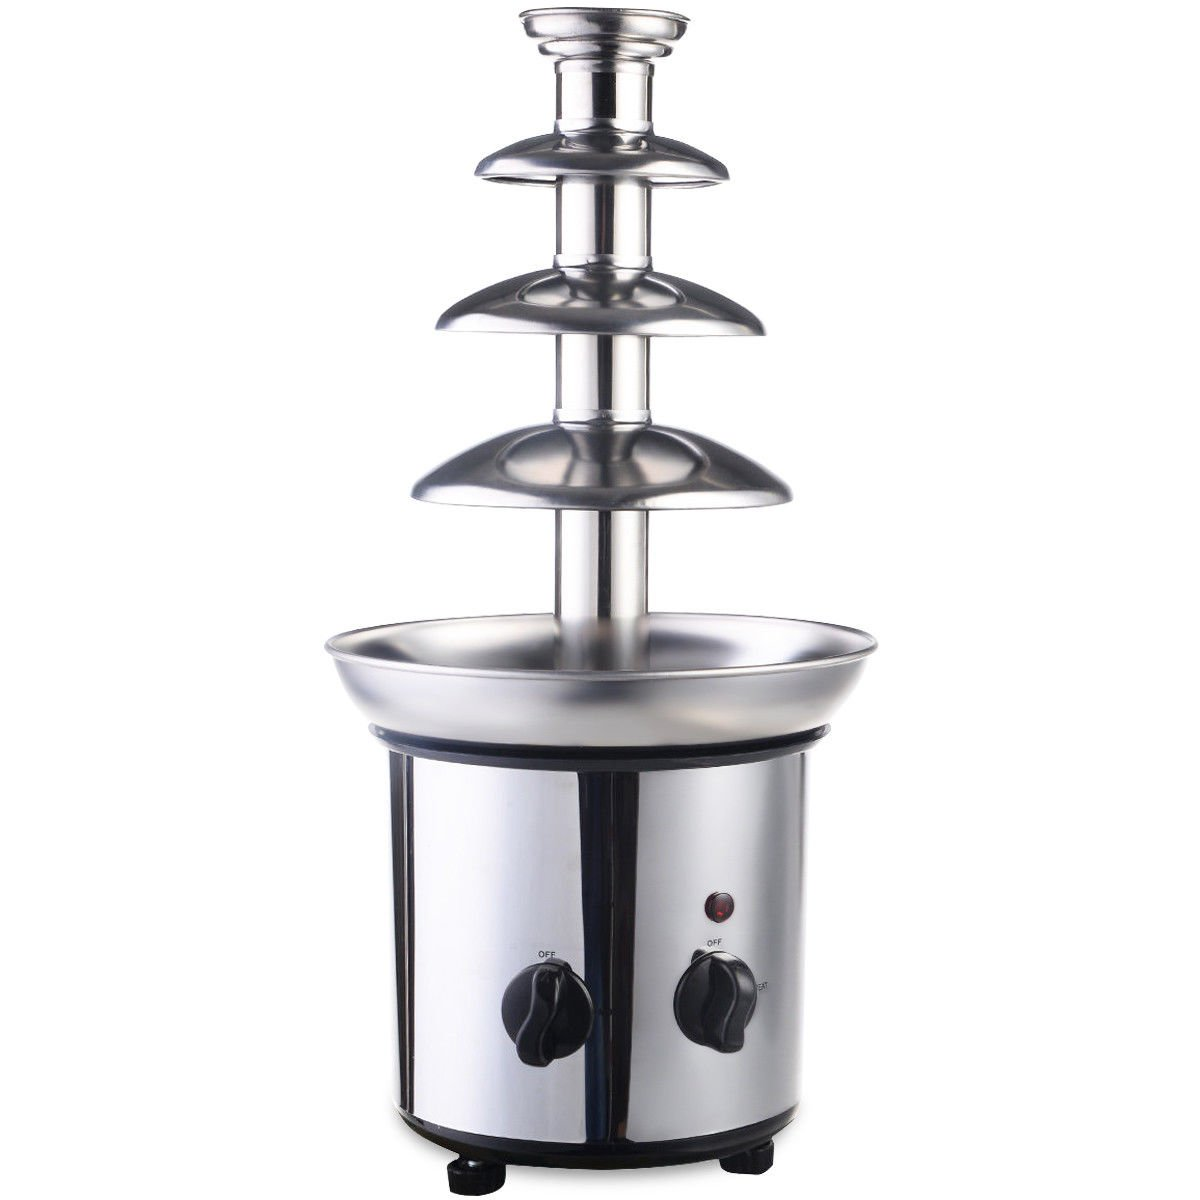 Giantex 4 Tiers 2-Pound Capacity Stainless Steel Chocolate Fondue Fountain for Party Wedding Hotel HW51743